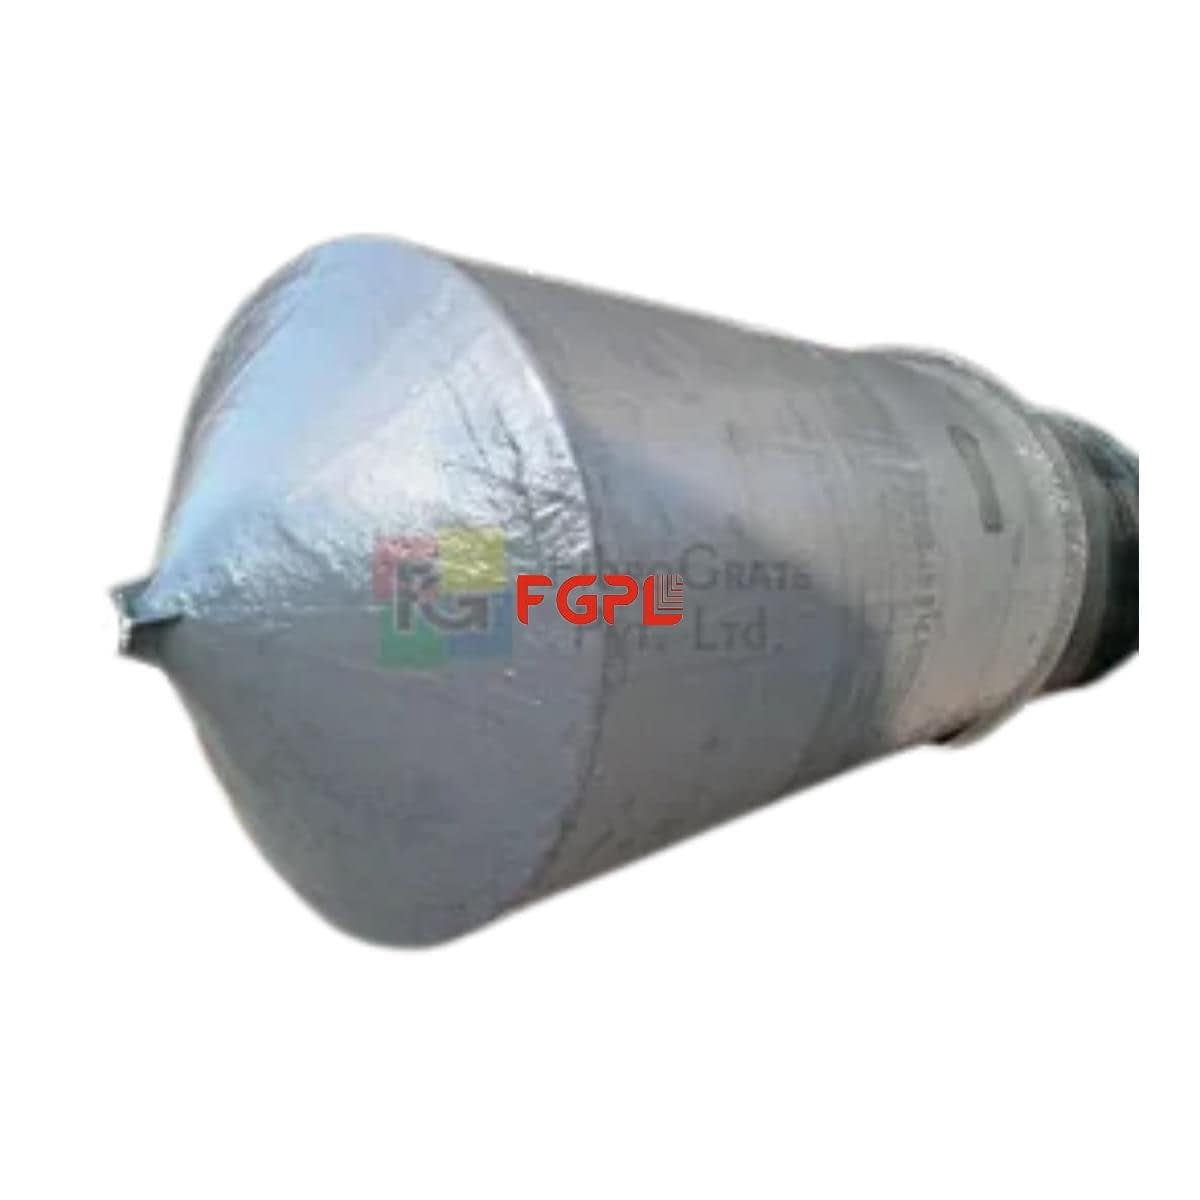 frp reaction vessel manufacturer in india, frp product manufacturer in india